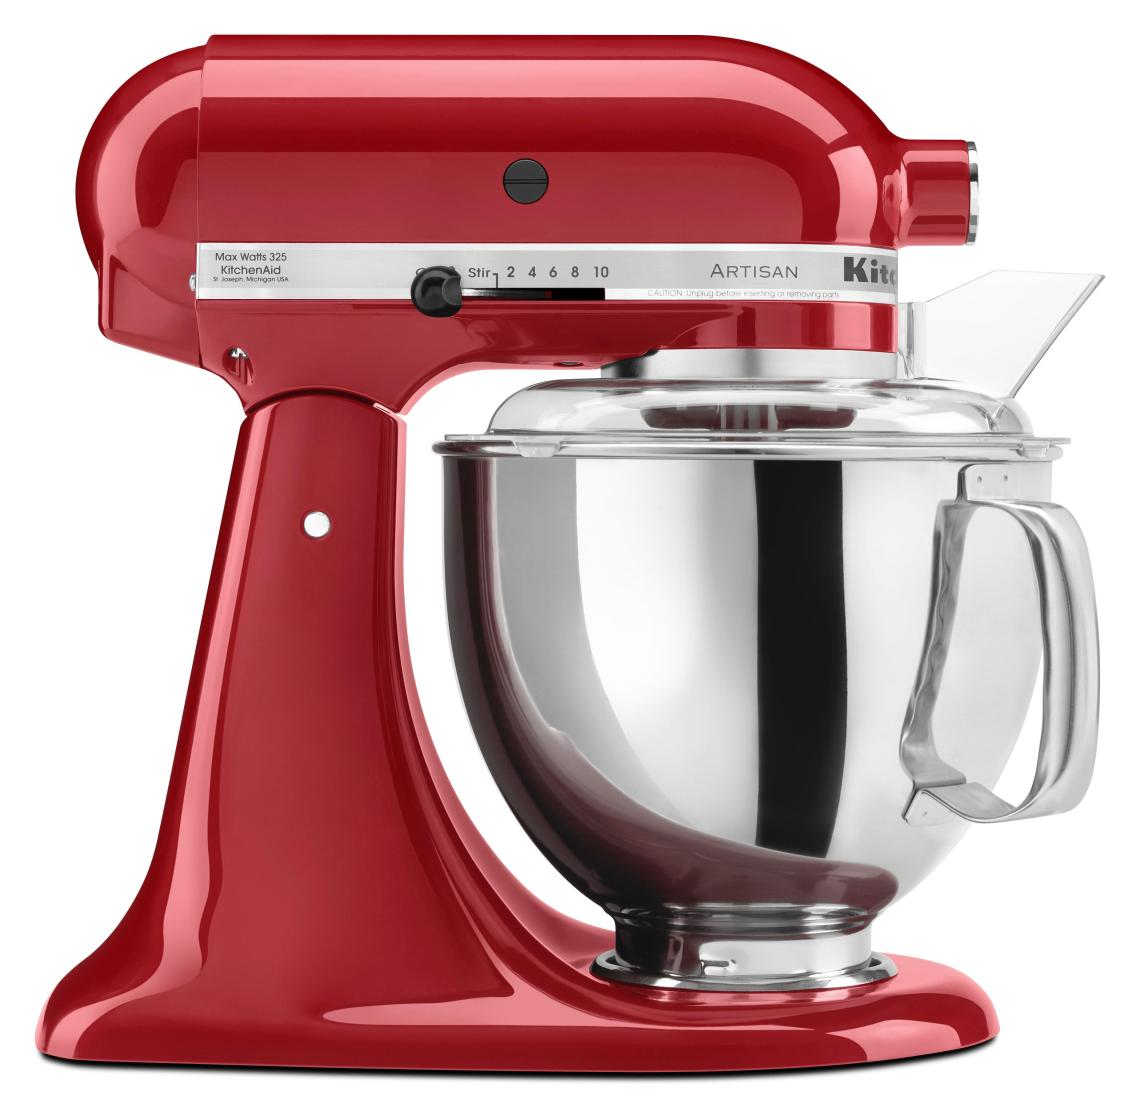 Image Result For Kitchenaid Food Mixer Sale